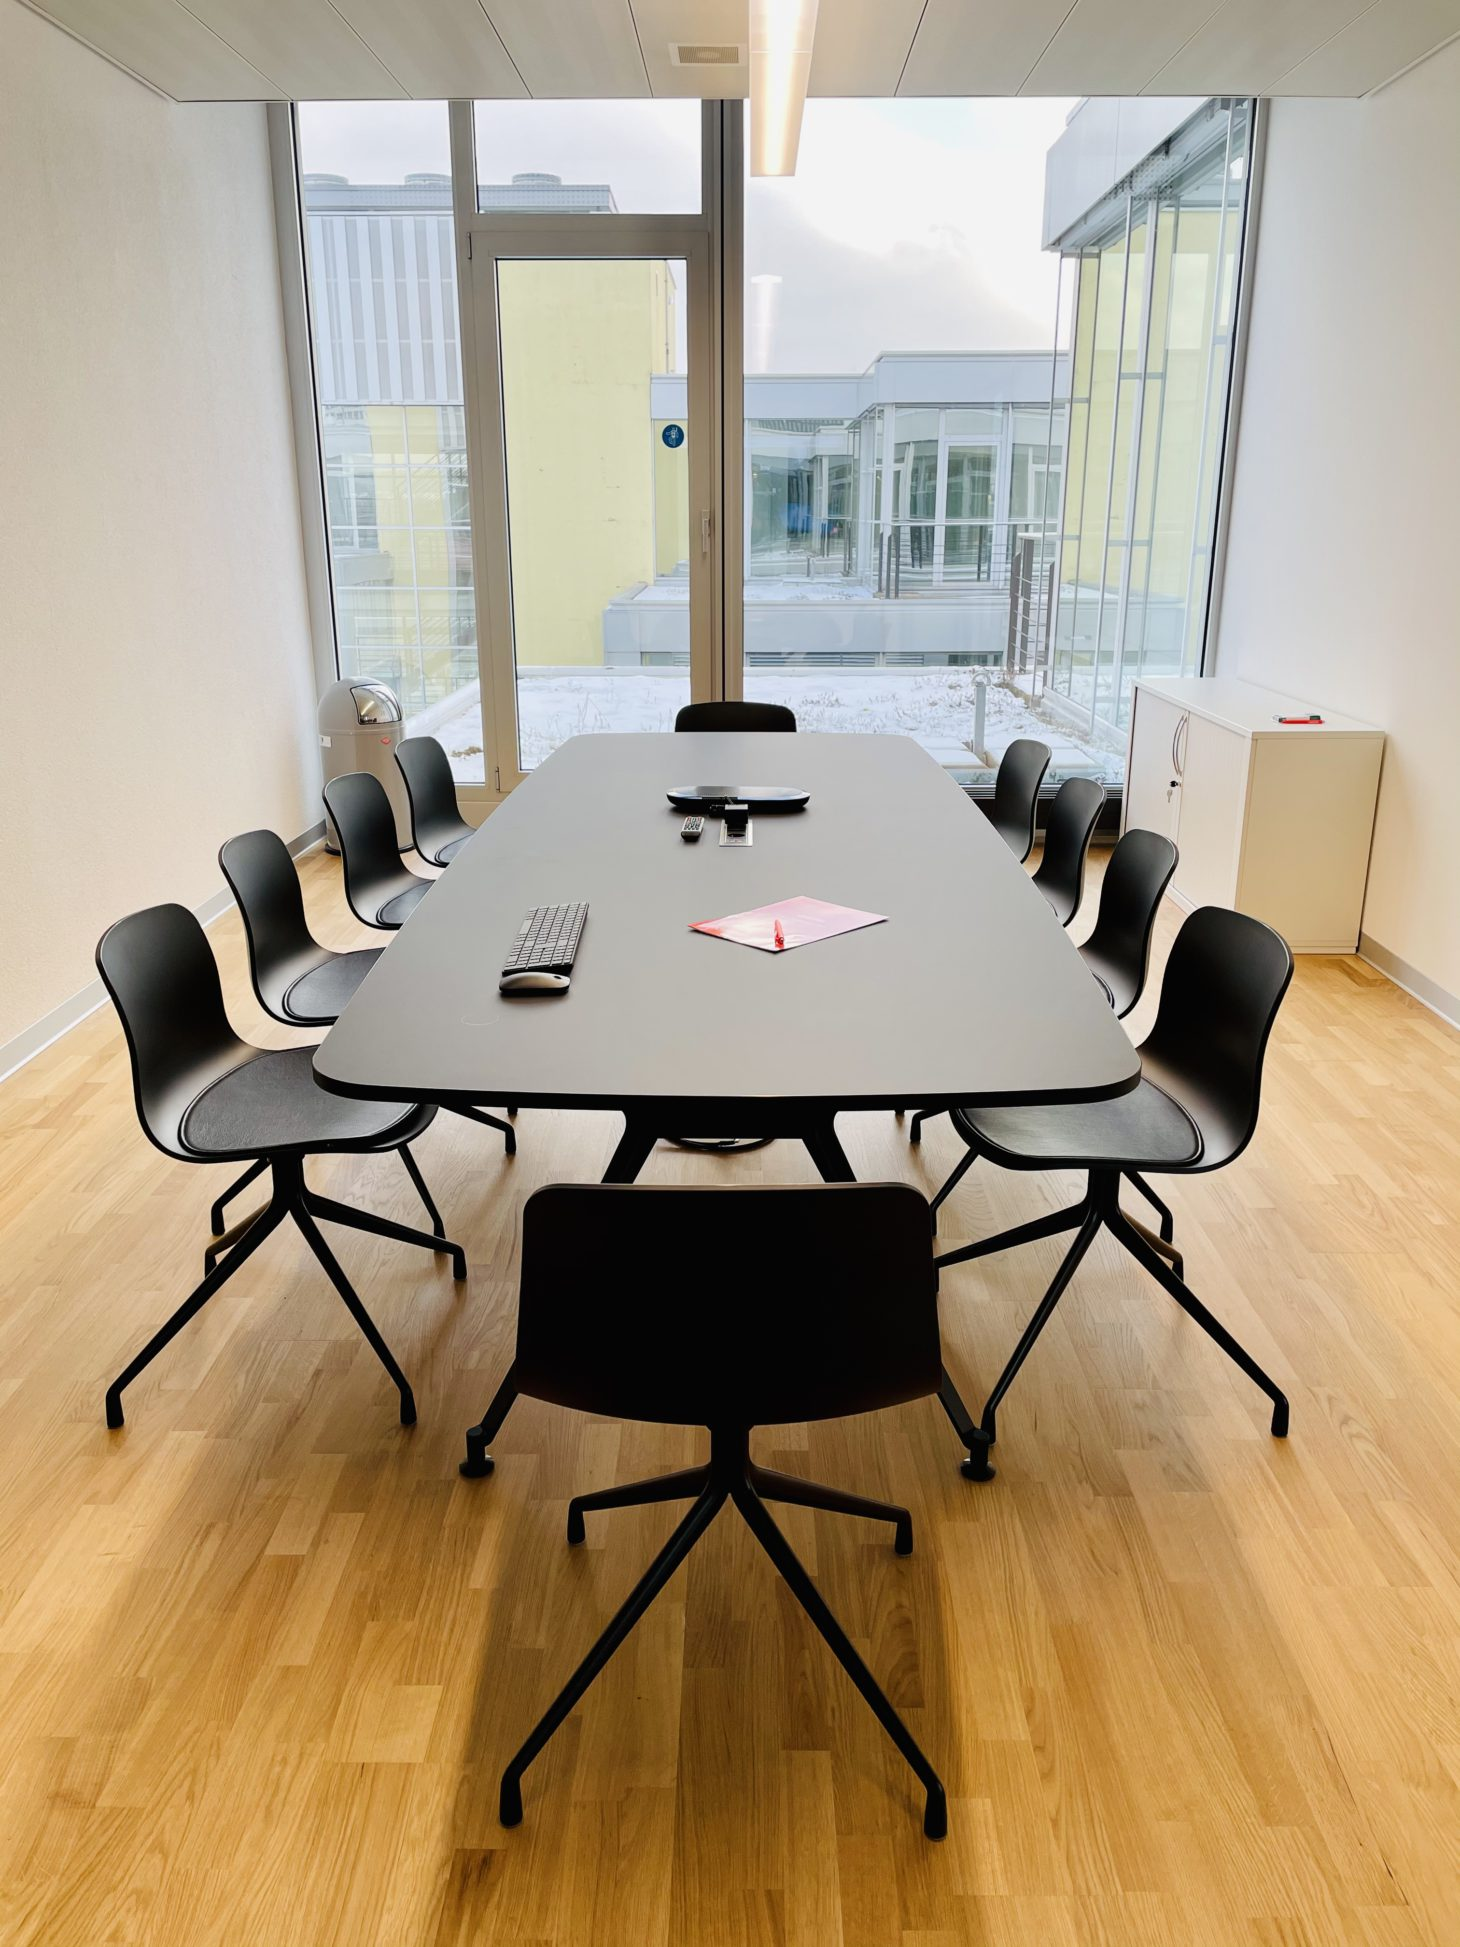 Image of the conference room of the valantic Zurich branch with a view of the window